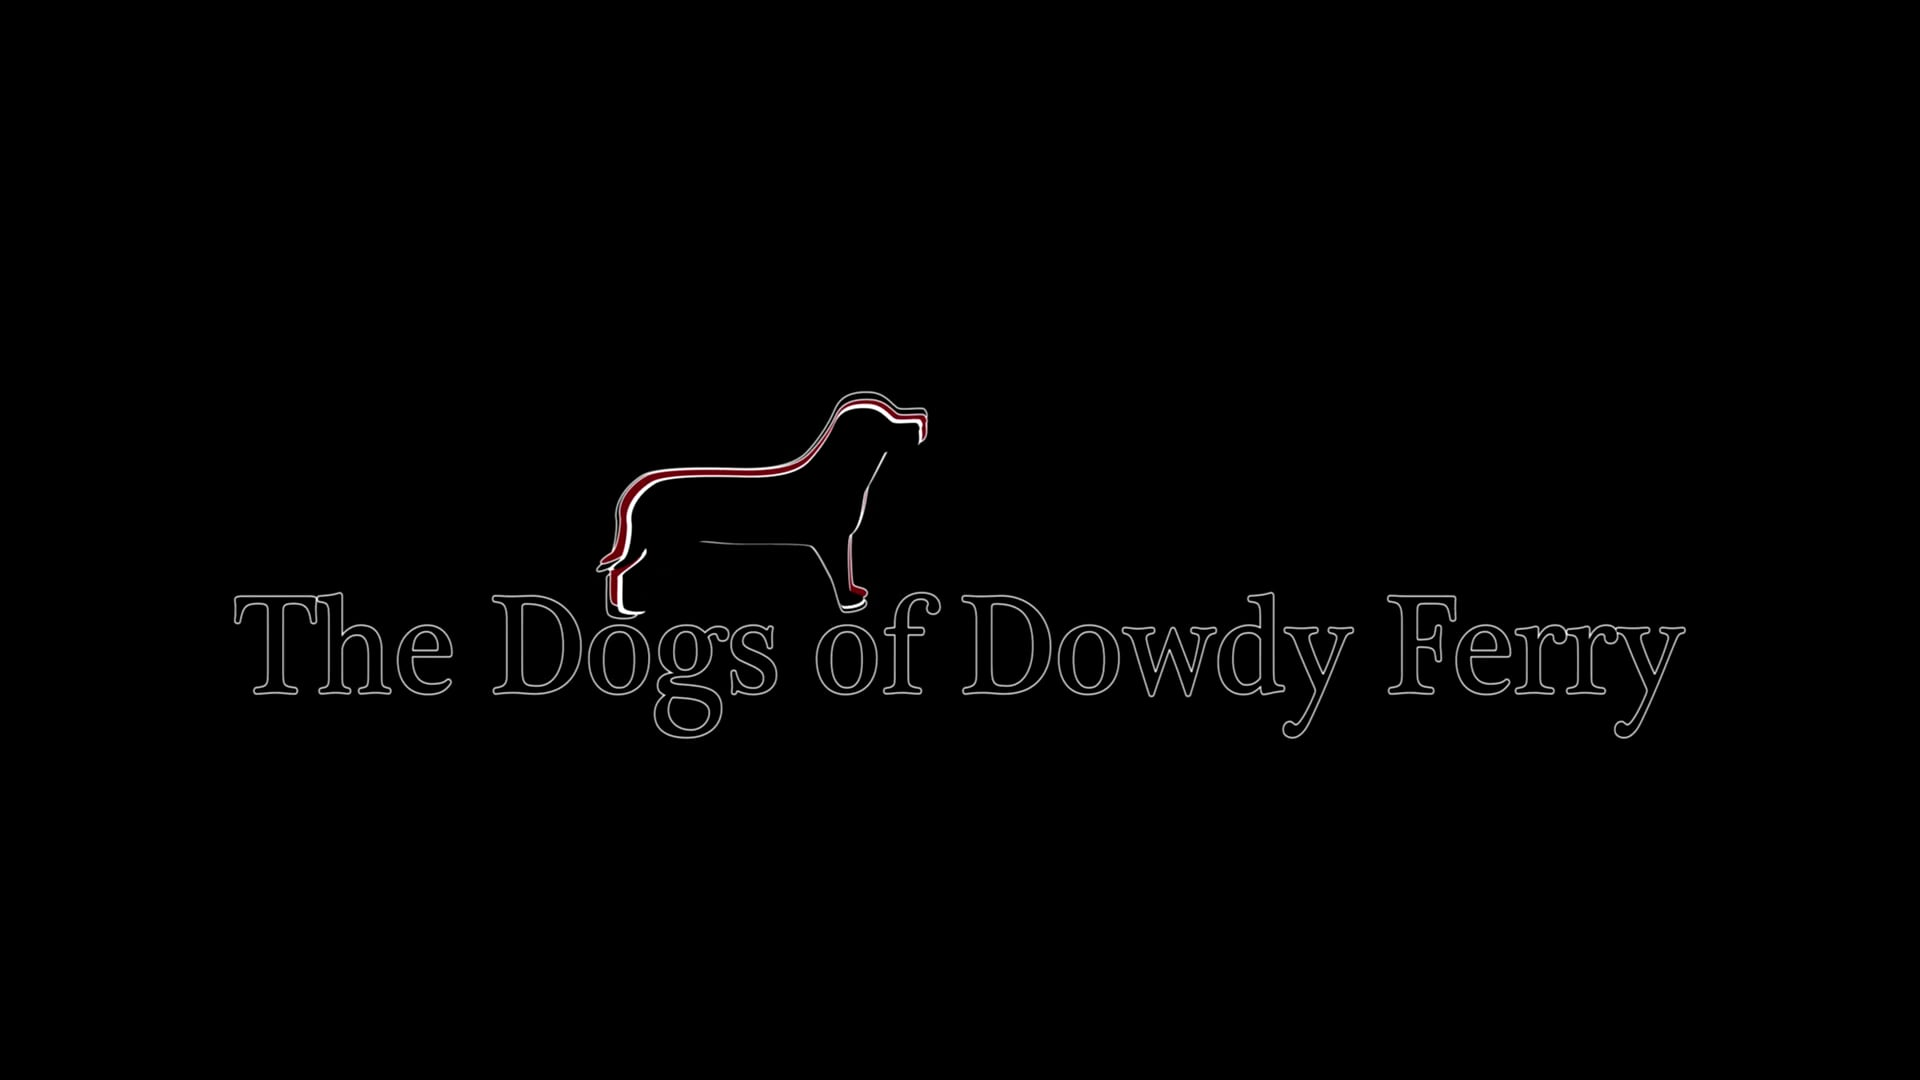 The Dogs of Dowdy Ferry